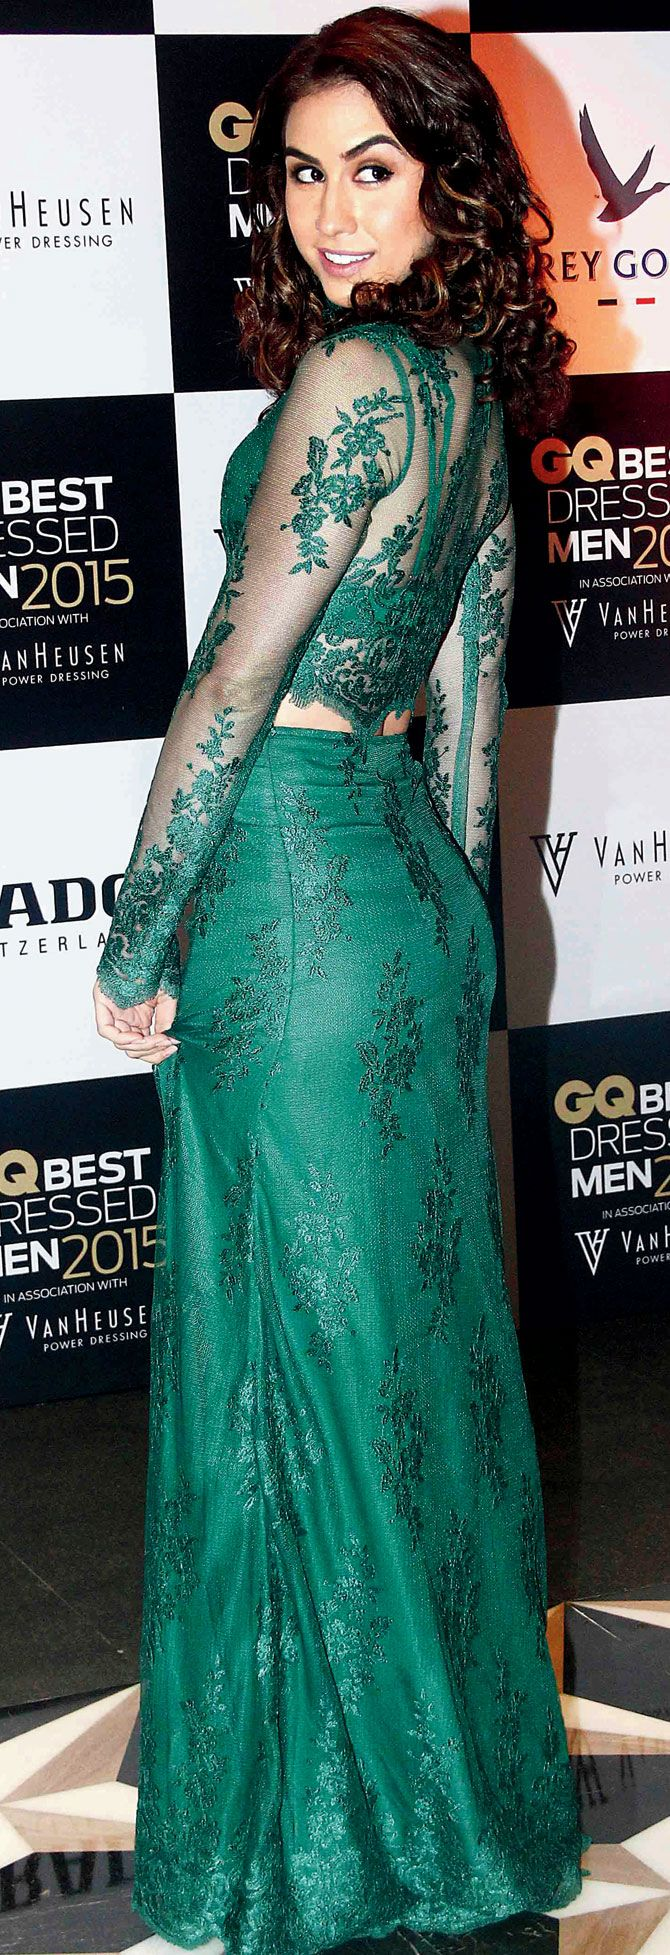 Lauren Gottlieb at the GQ Best Dressed Men 2015 - #GQBestDressed. #Bollywood #Fashion #Style #Beauty #Sexy #Hot